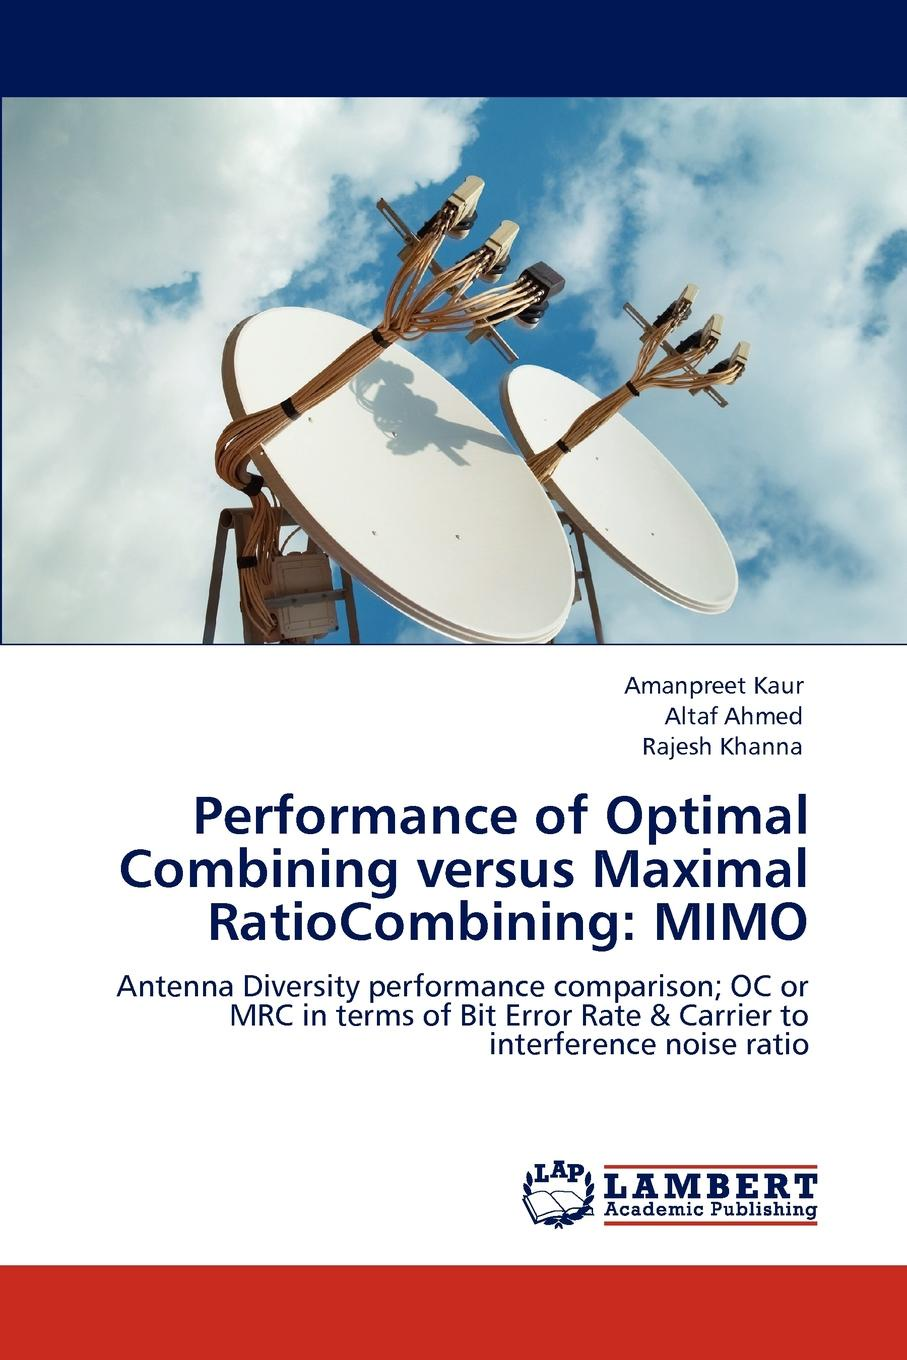 Amanpreet Kaur, Altaf Ahmed, Rajesh Khanna Performance of Optimal Combining versus Maximal RatioCombining. MIMO diversity combining for digital signals in wireless fading channels